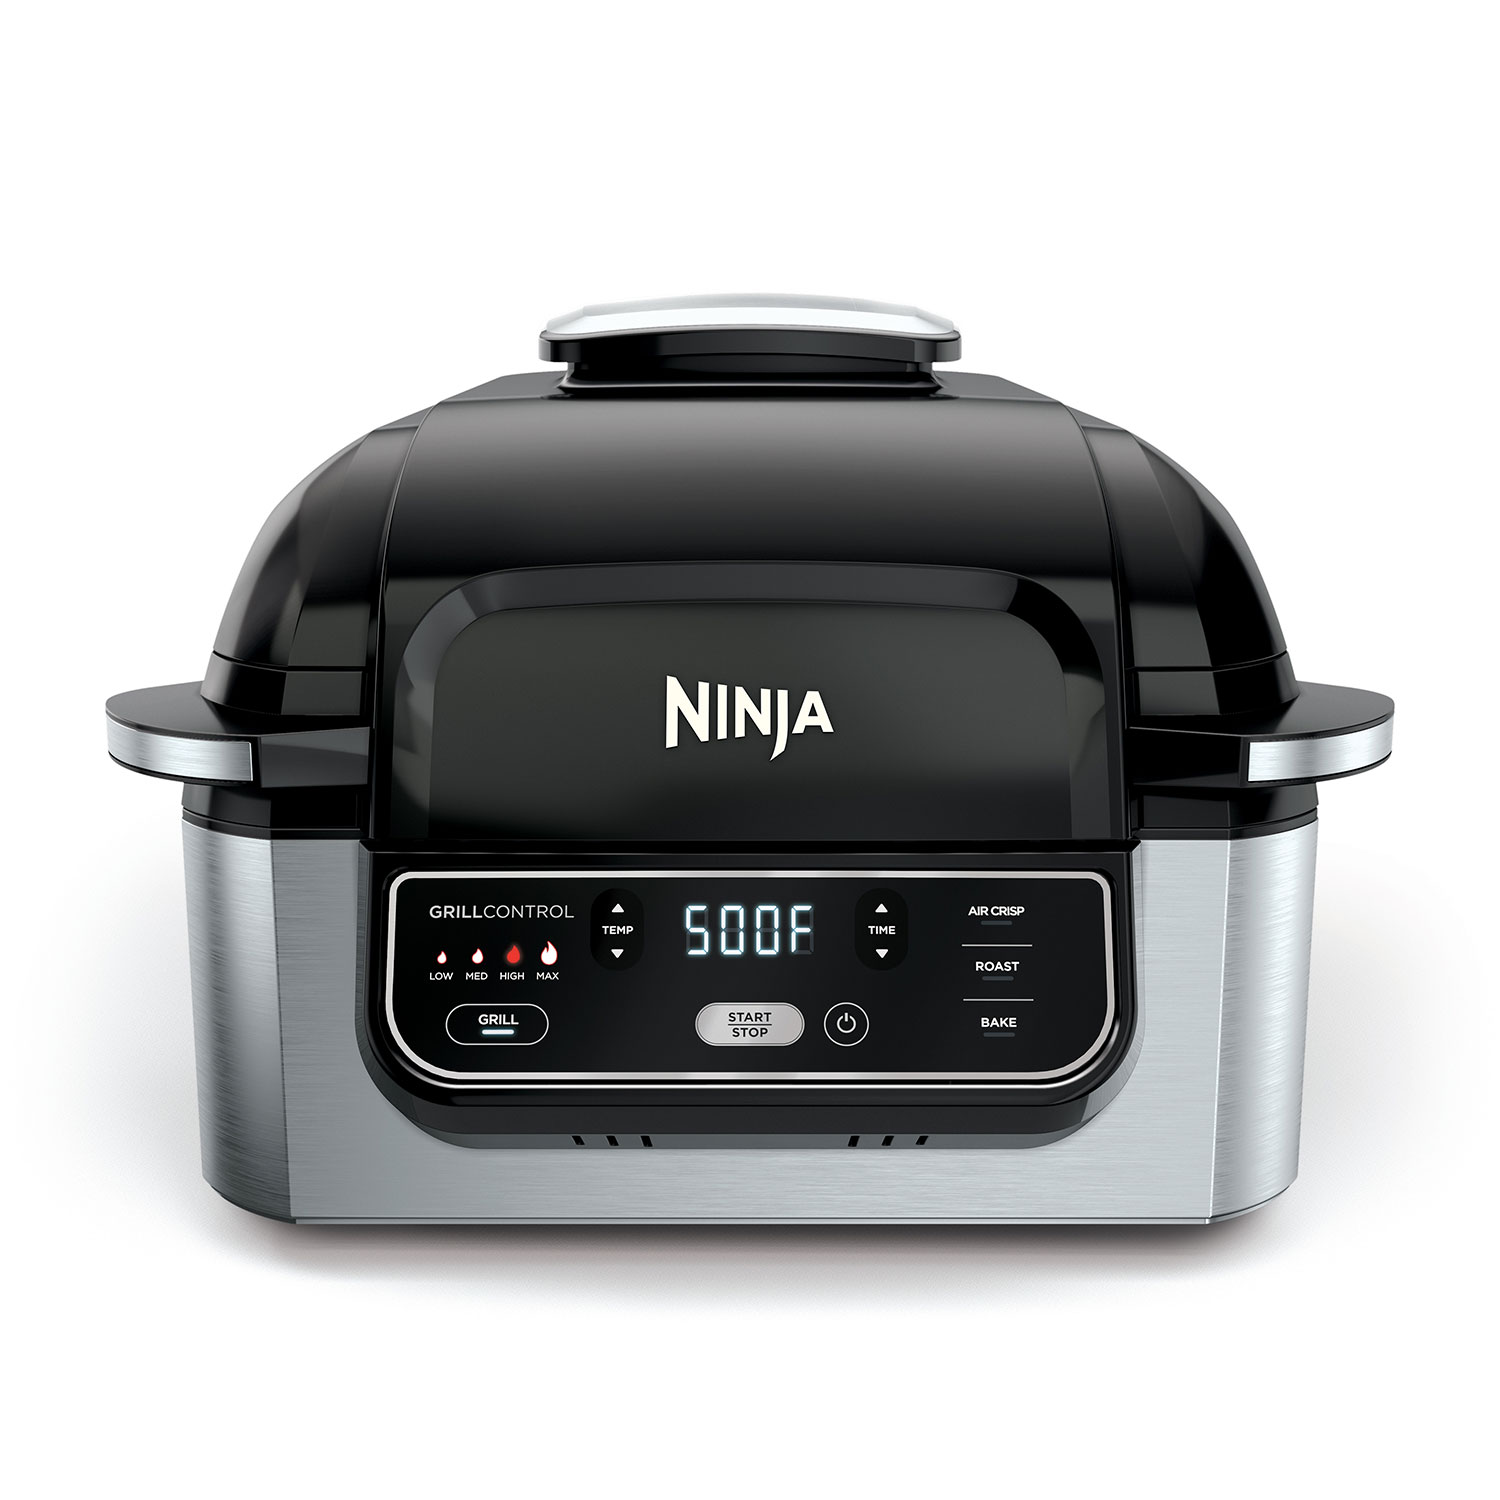 ninja foodi indoor grill 4 quart air fryer roast bake